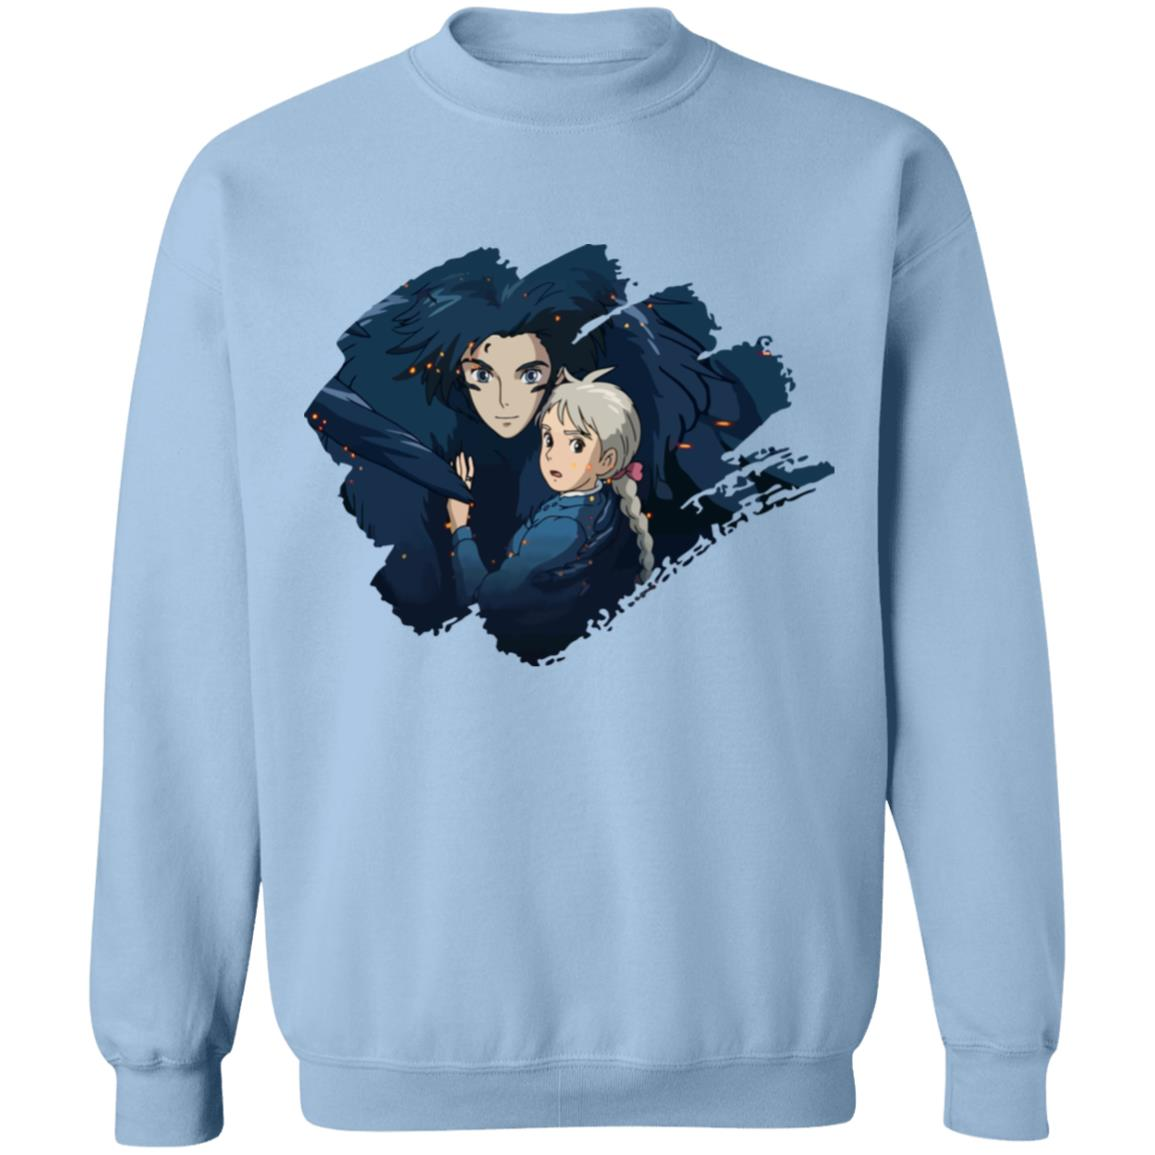 Howl and Sophia Sweatshirt Unisex